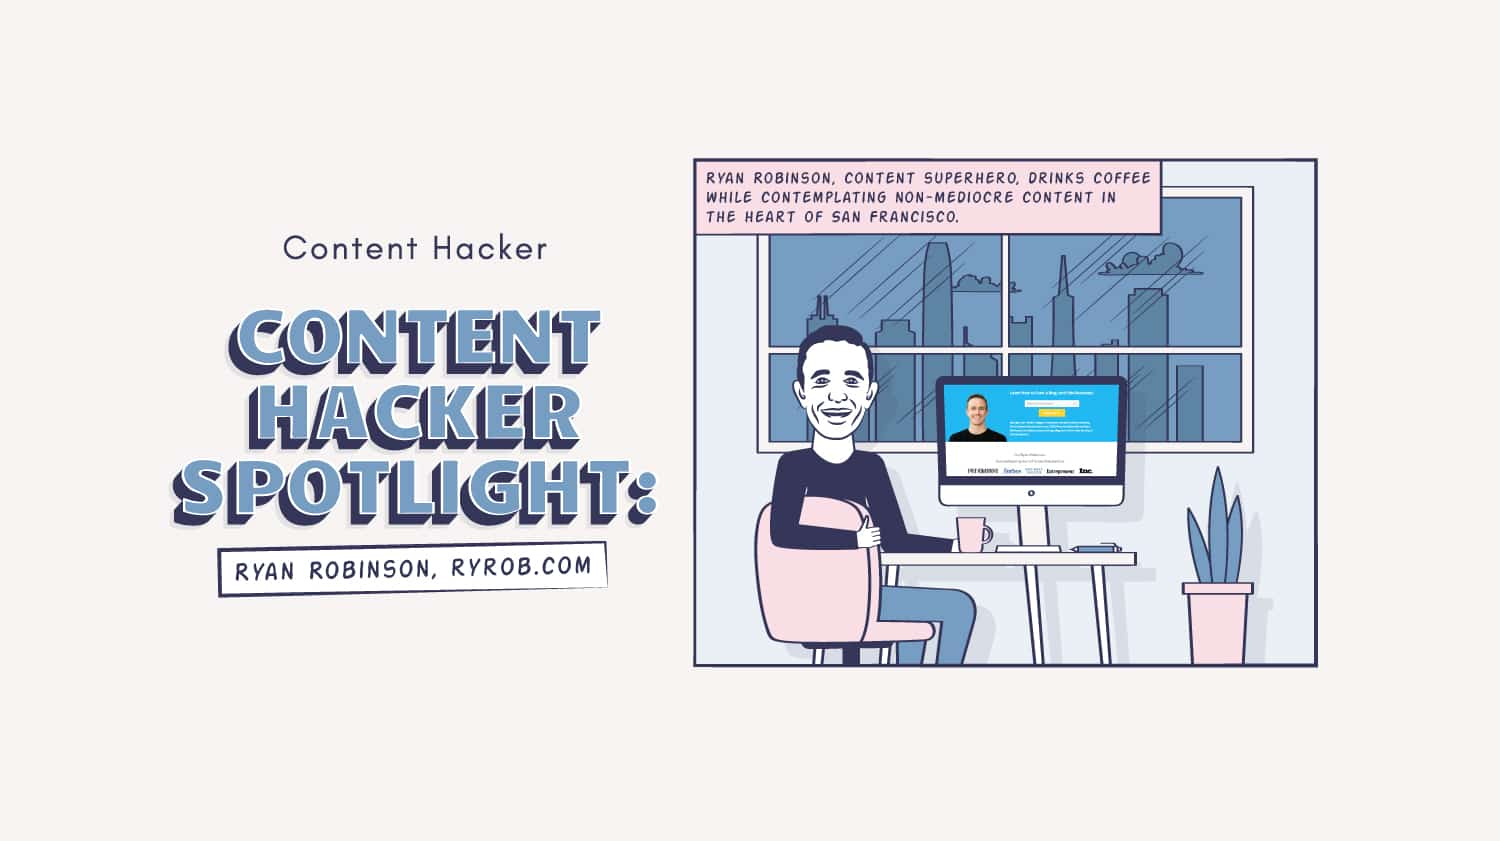 Ryan Robinson Content Hacker Spotlight